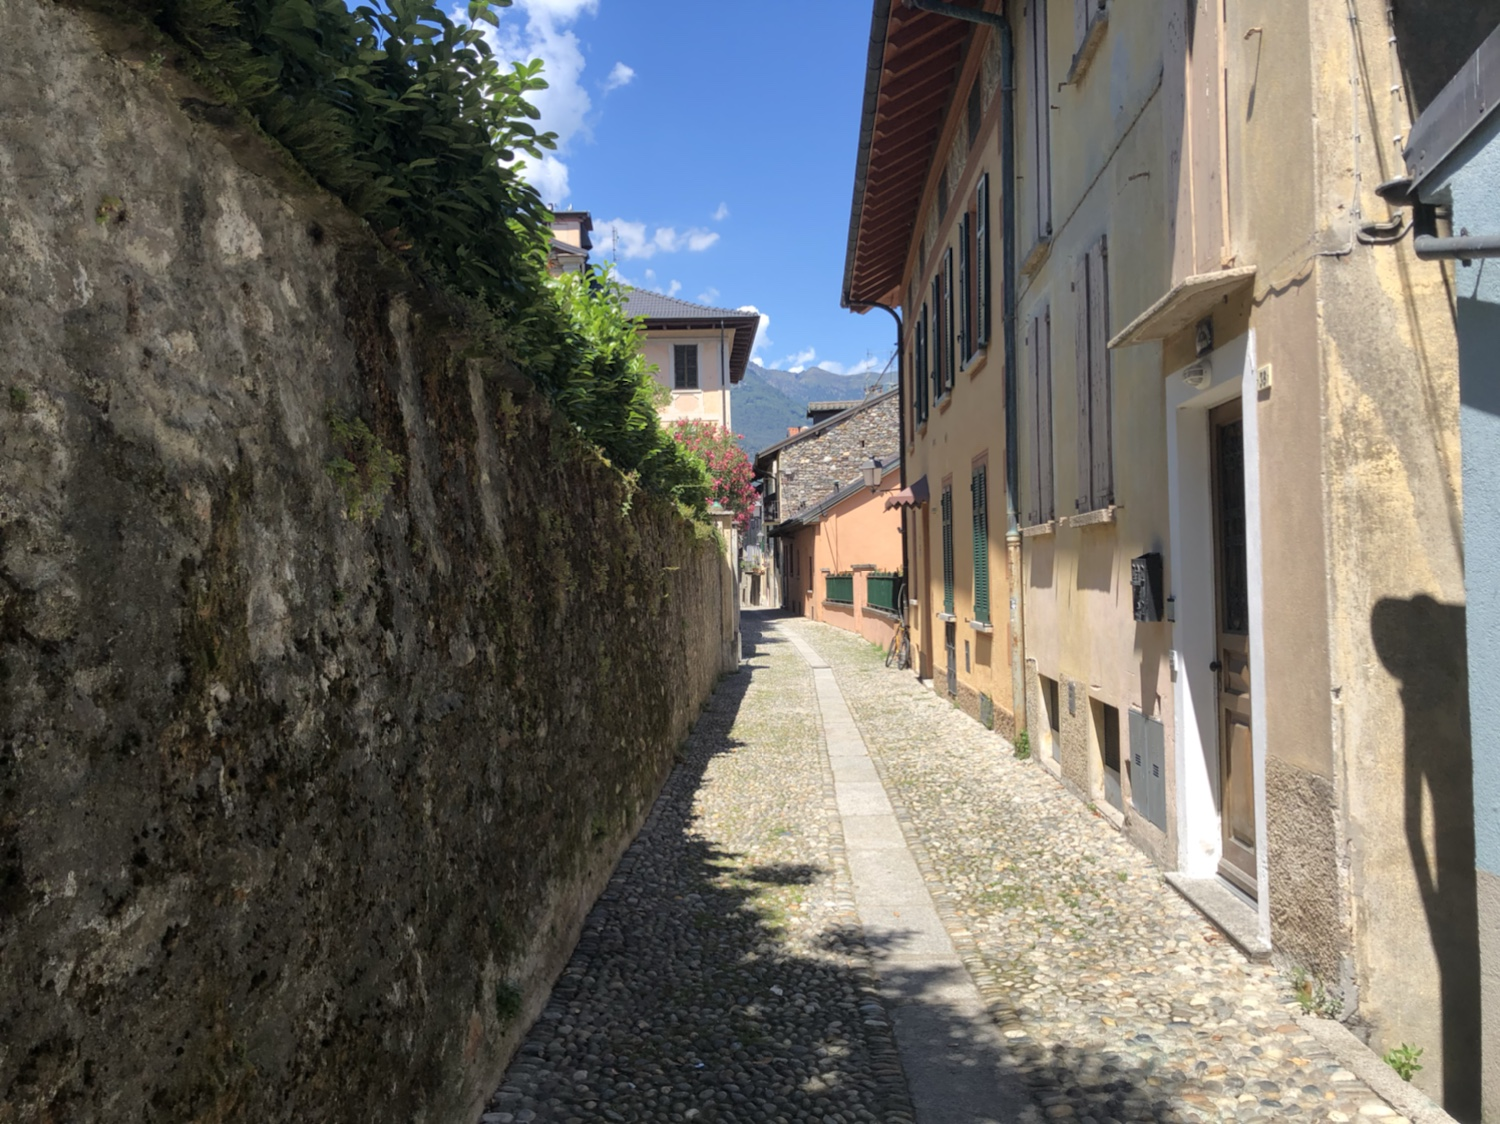 Spaziergang durch Cannobio